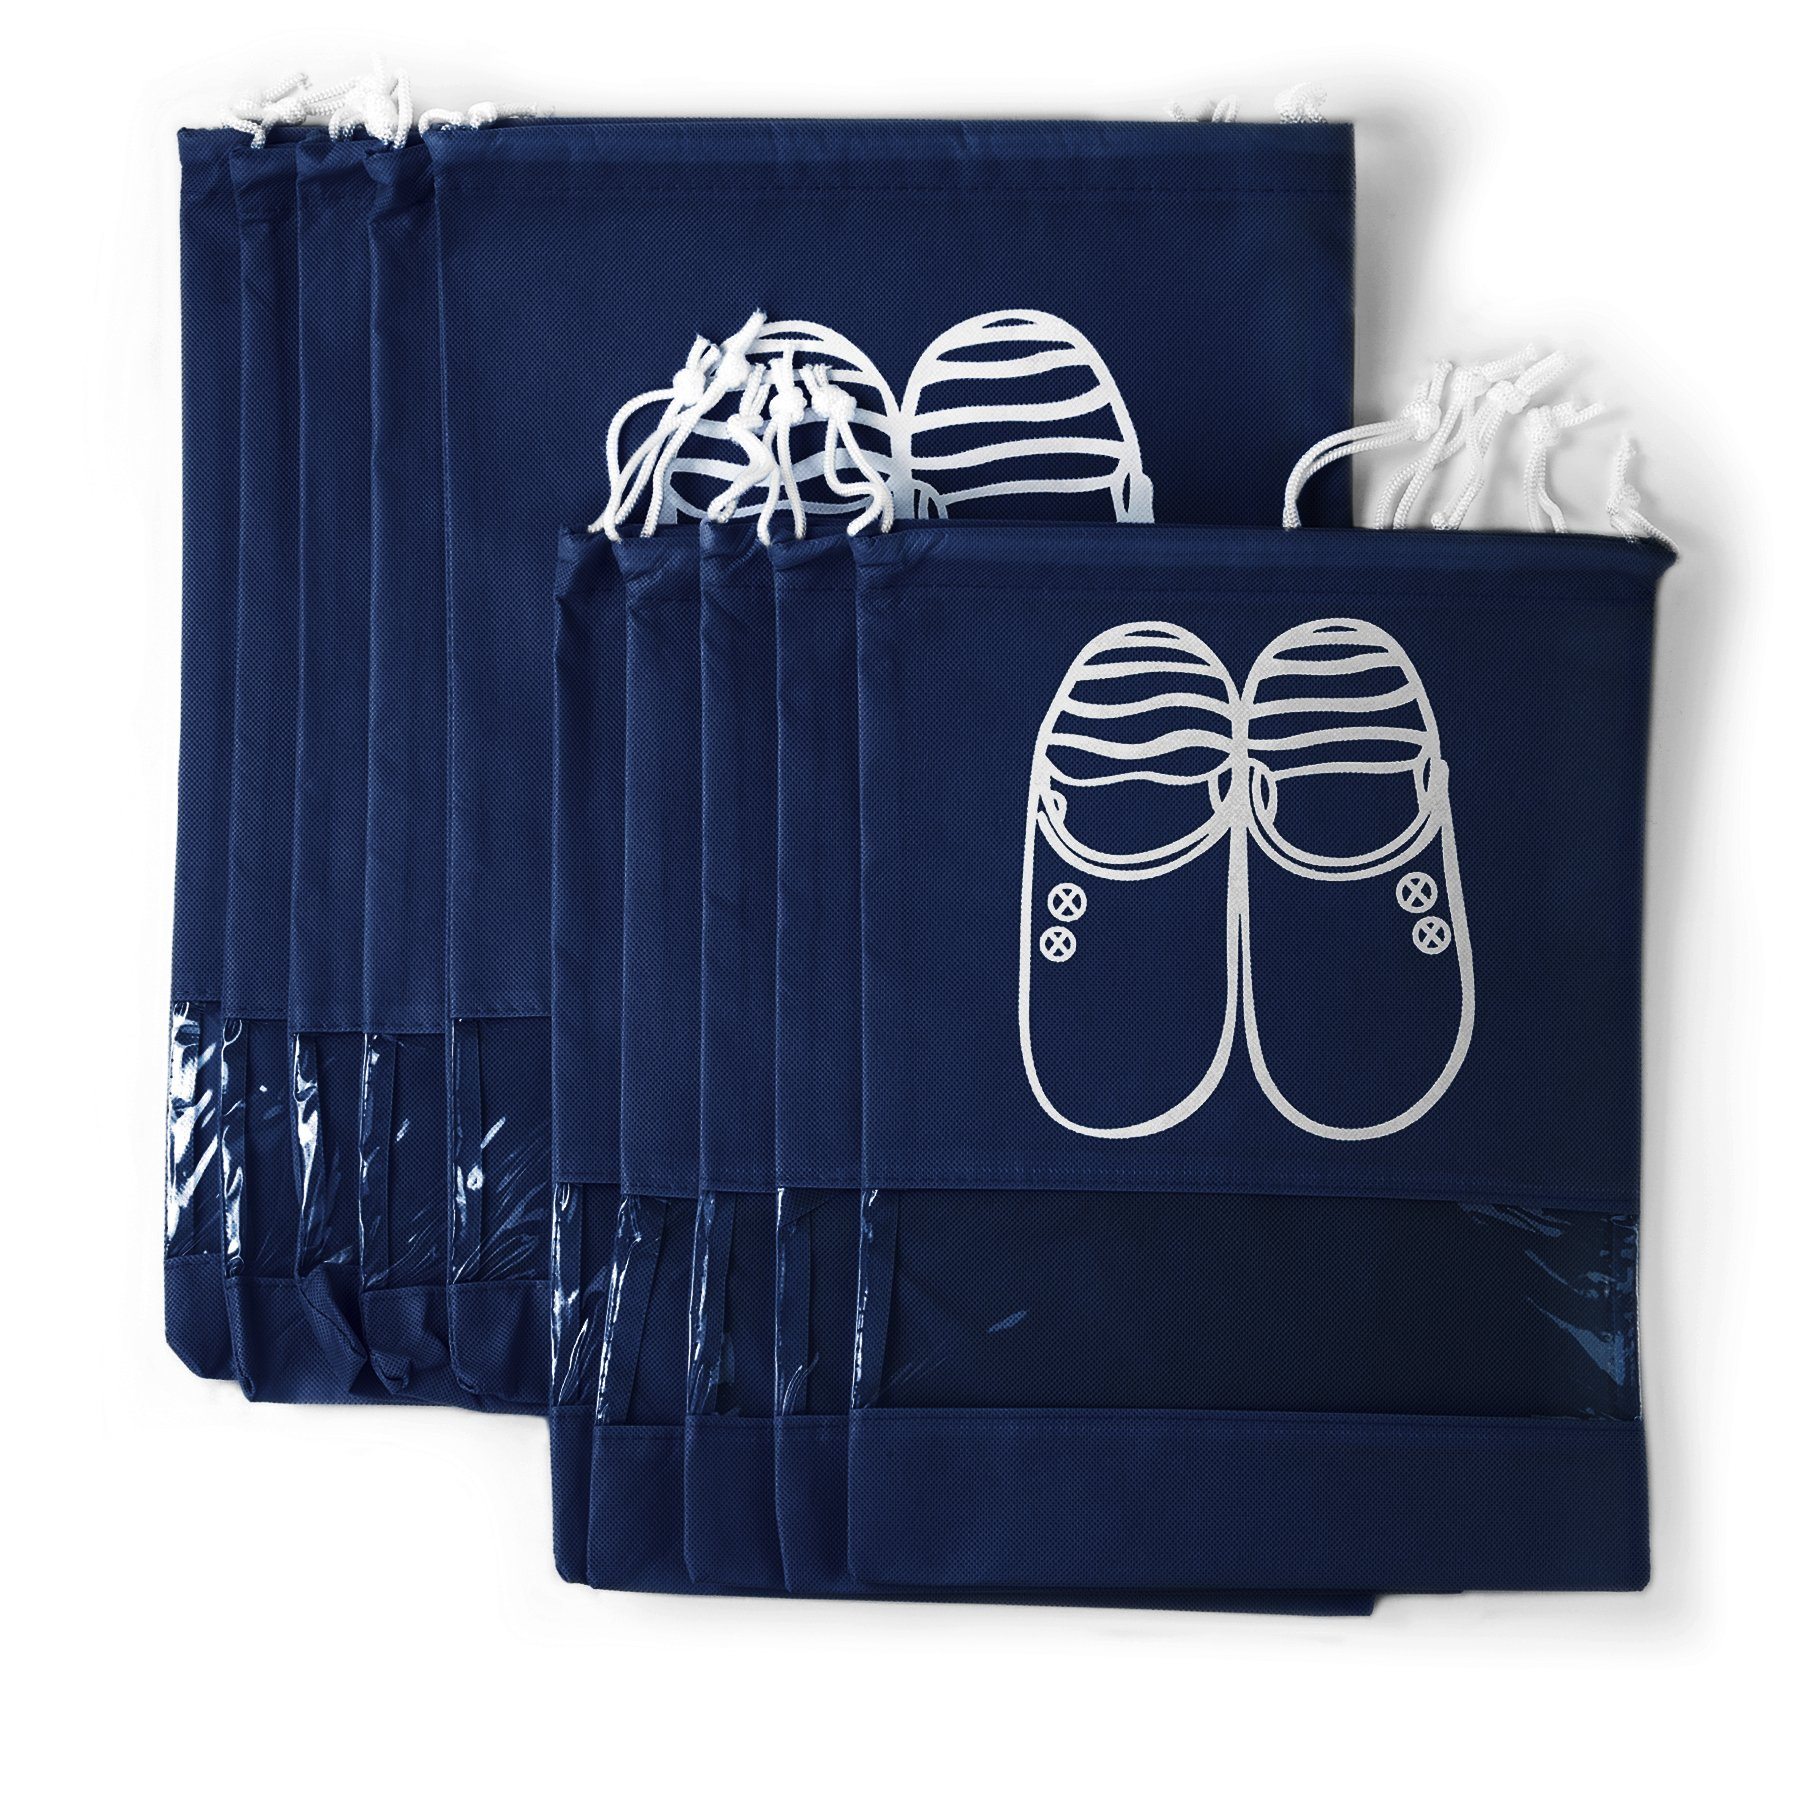 Yoonsic 10 Pcs Non-woven Drawstring Shoe Travel/Storage Bag with Clear View Window for Trip and luggage/seasonal Packing-with bonus self-sealing bag (navy) by Yoonsic